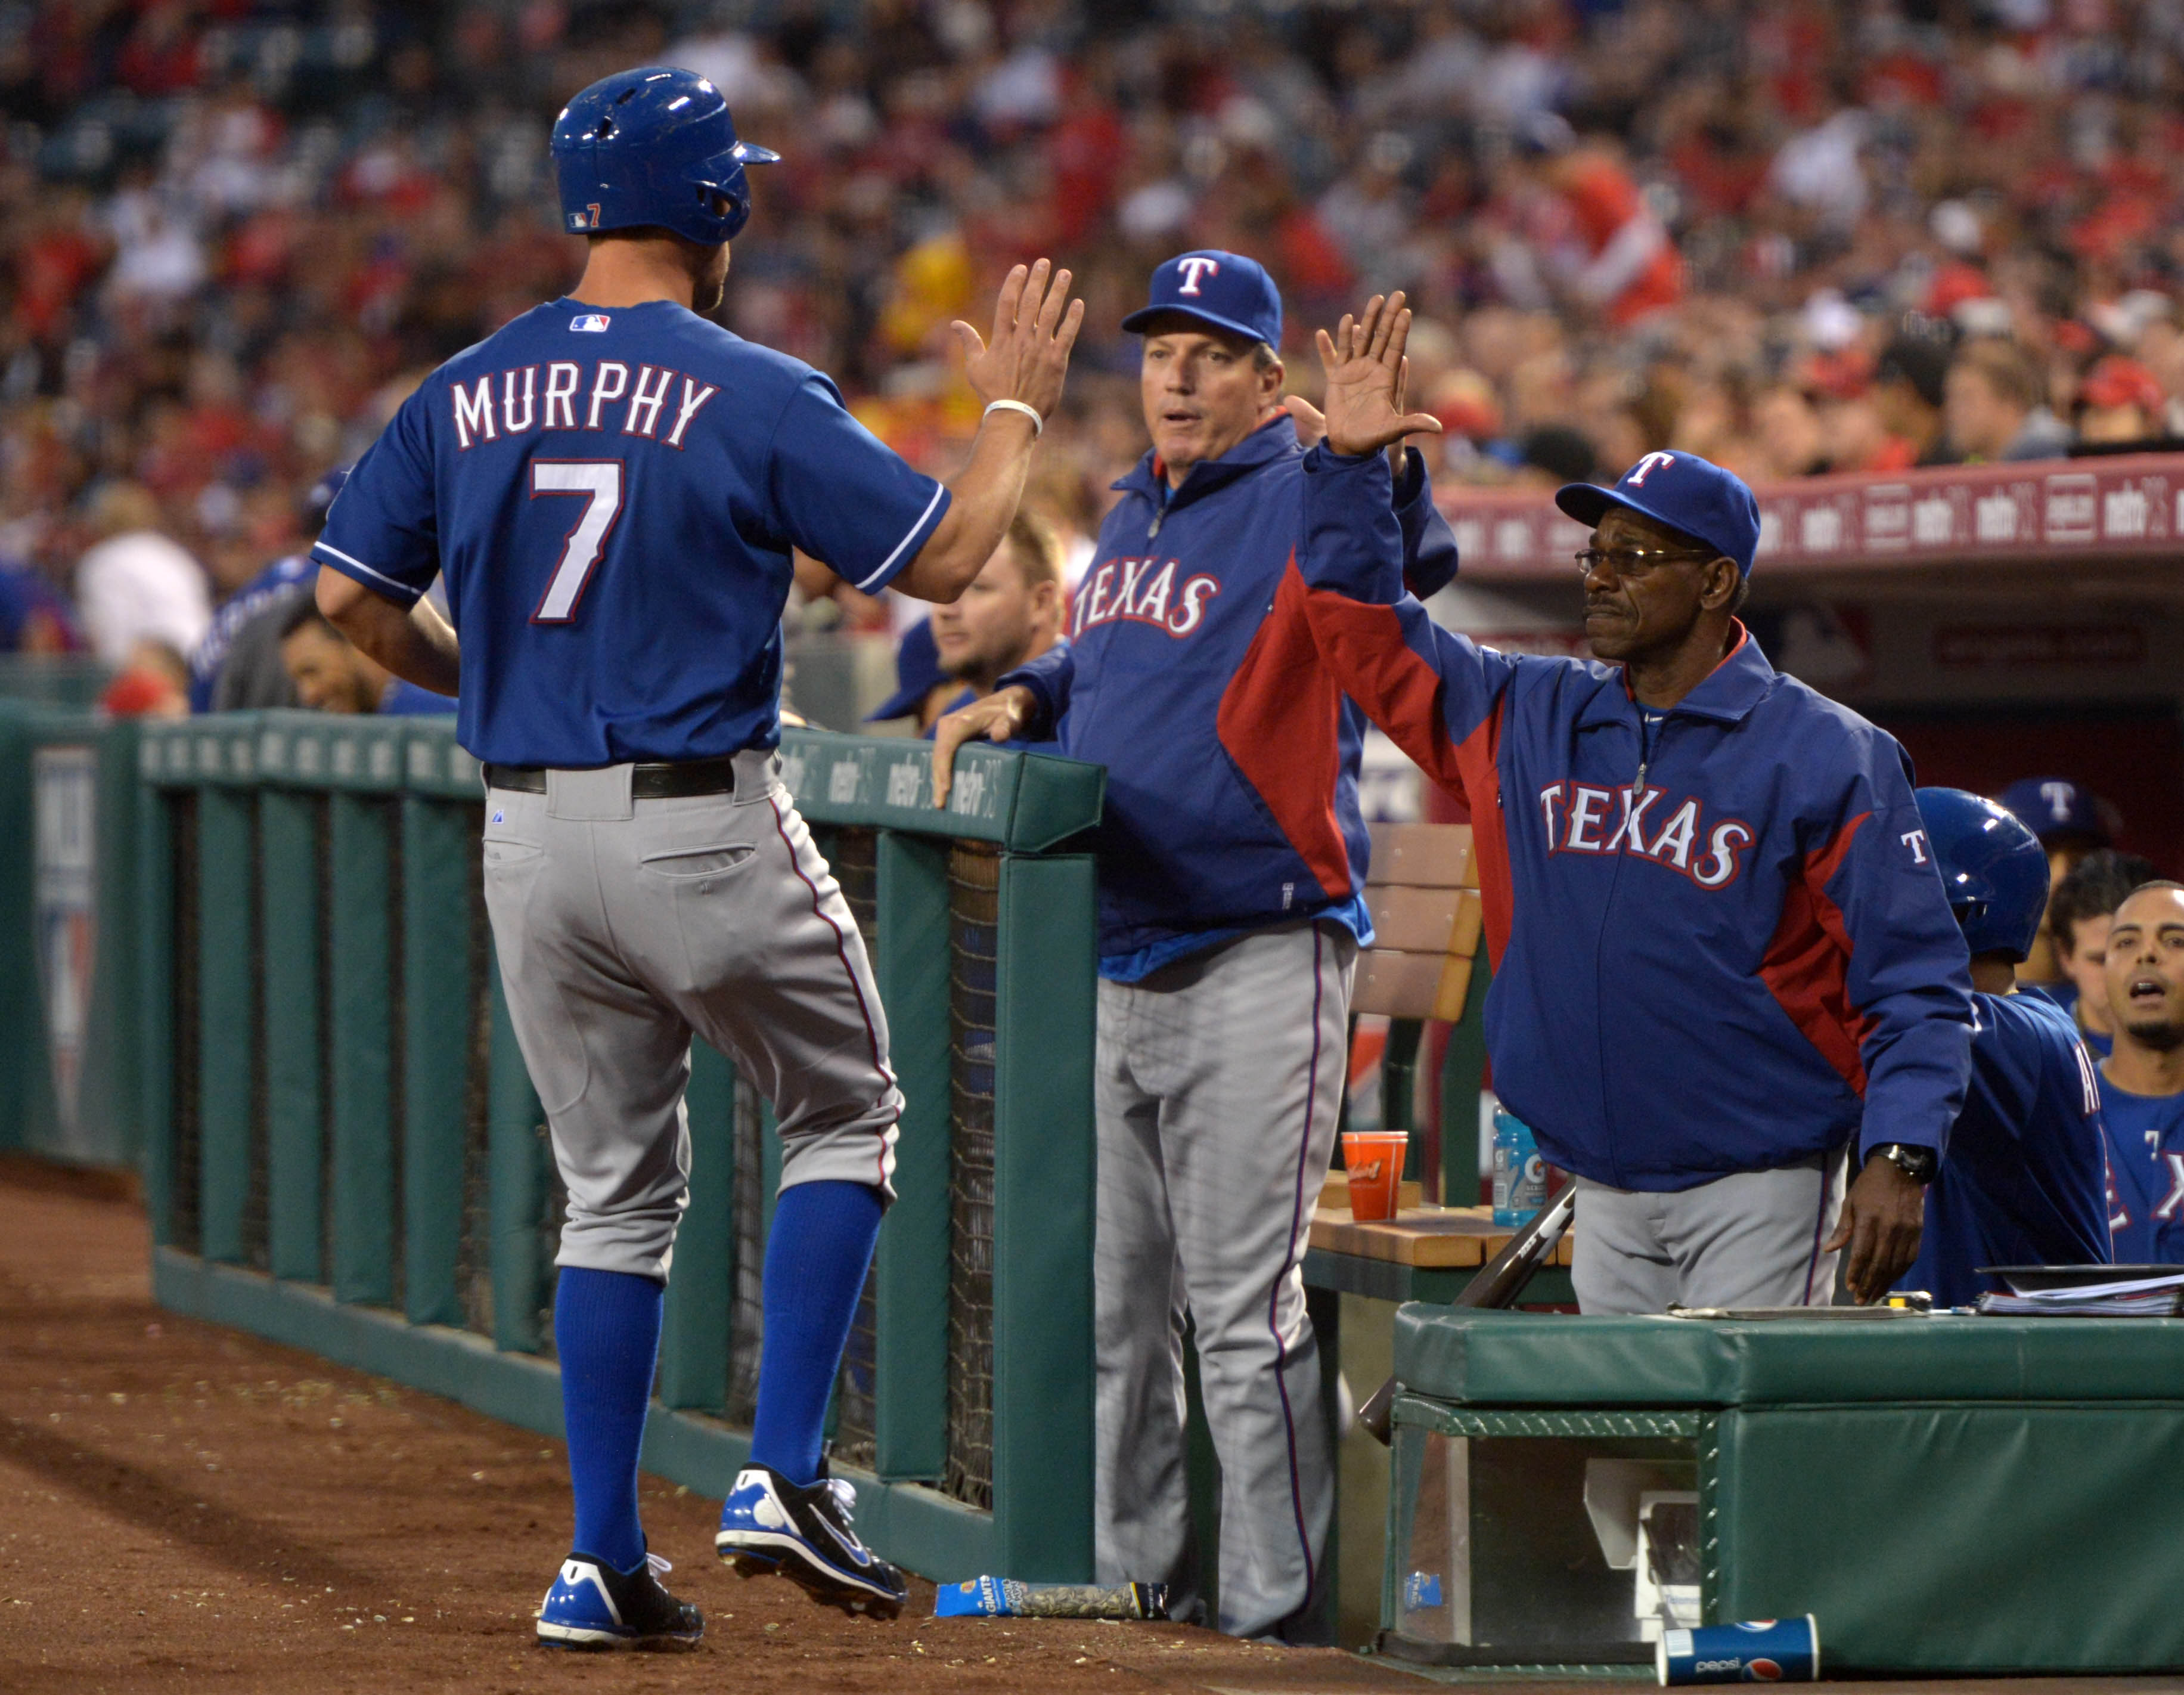 The Rangers haven't shown much of a letdown after an offseason in which they lost Josh Hamilton. (USA Today Sports)